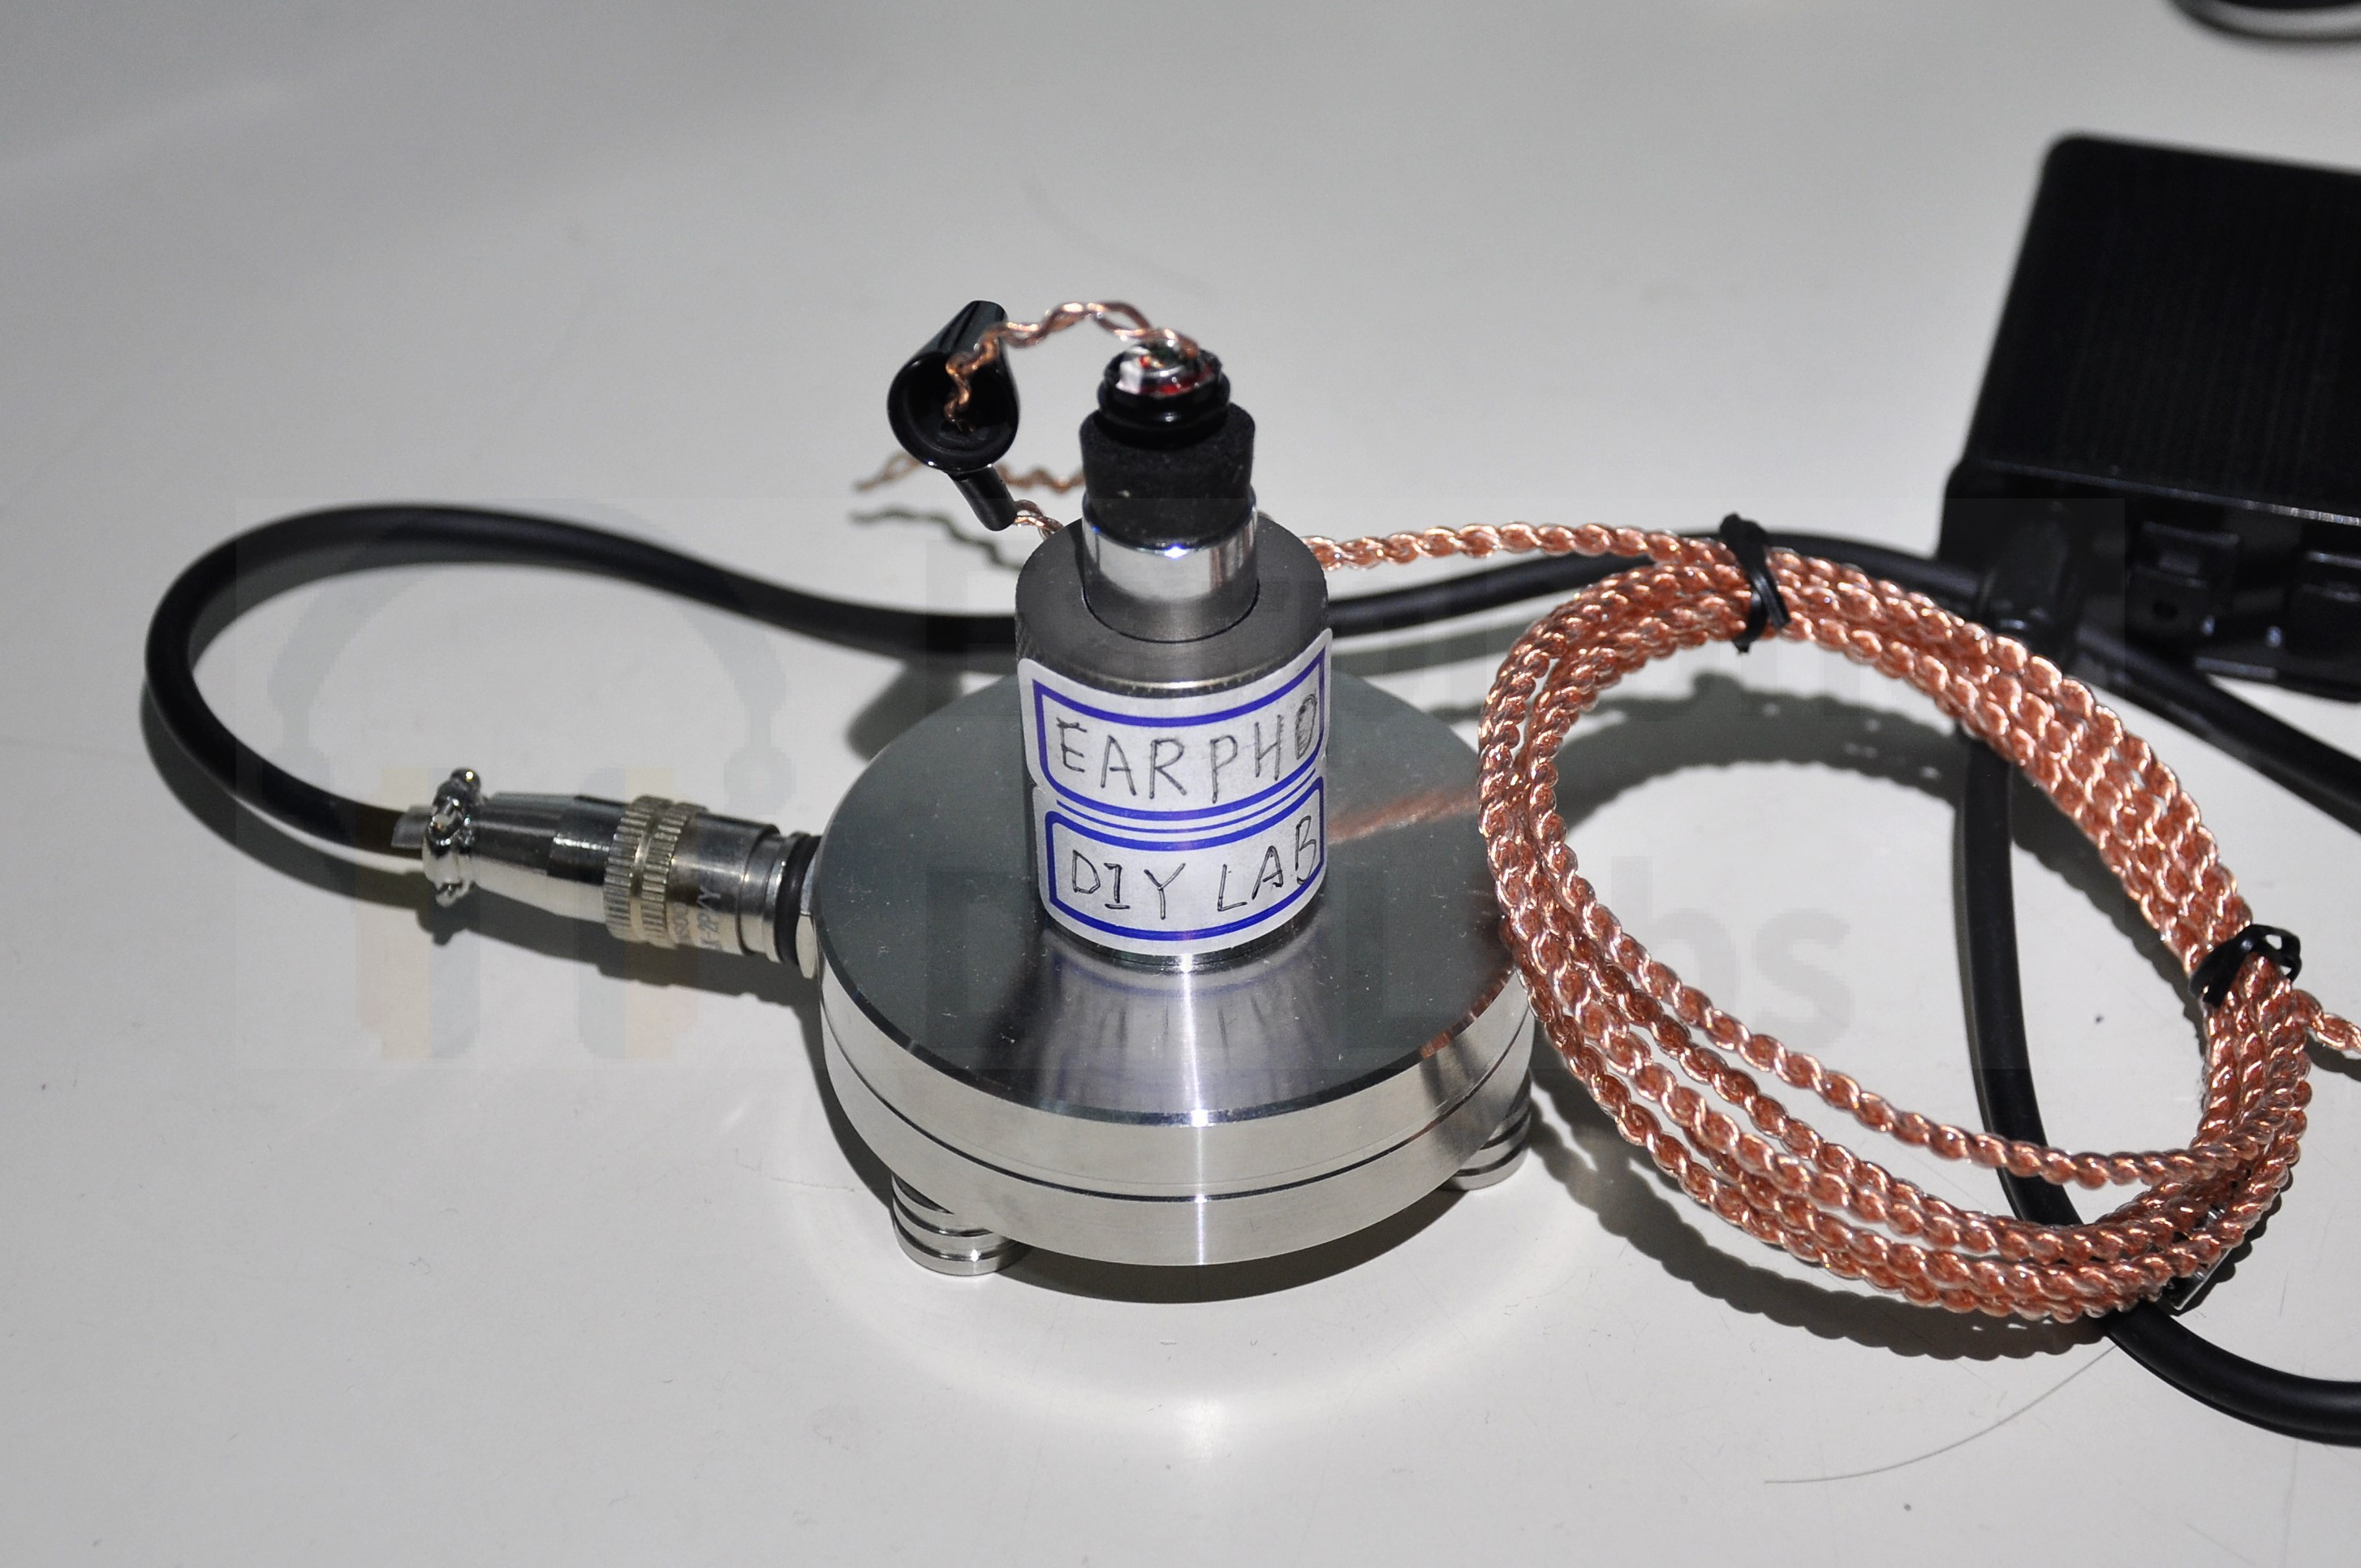 7.8mm Ultra Low THD Titanium Driver Unit